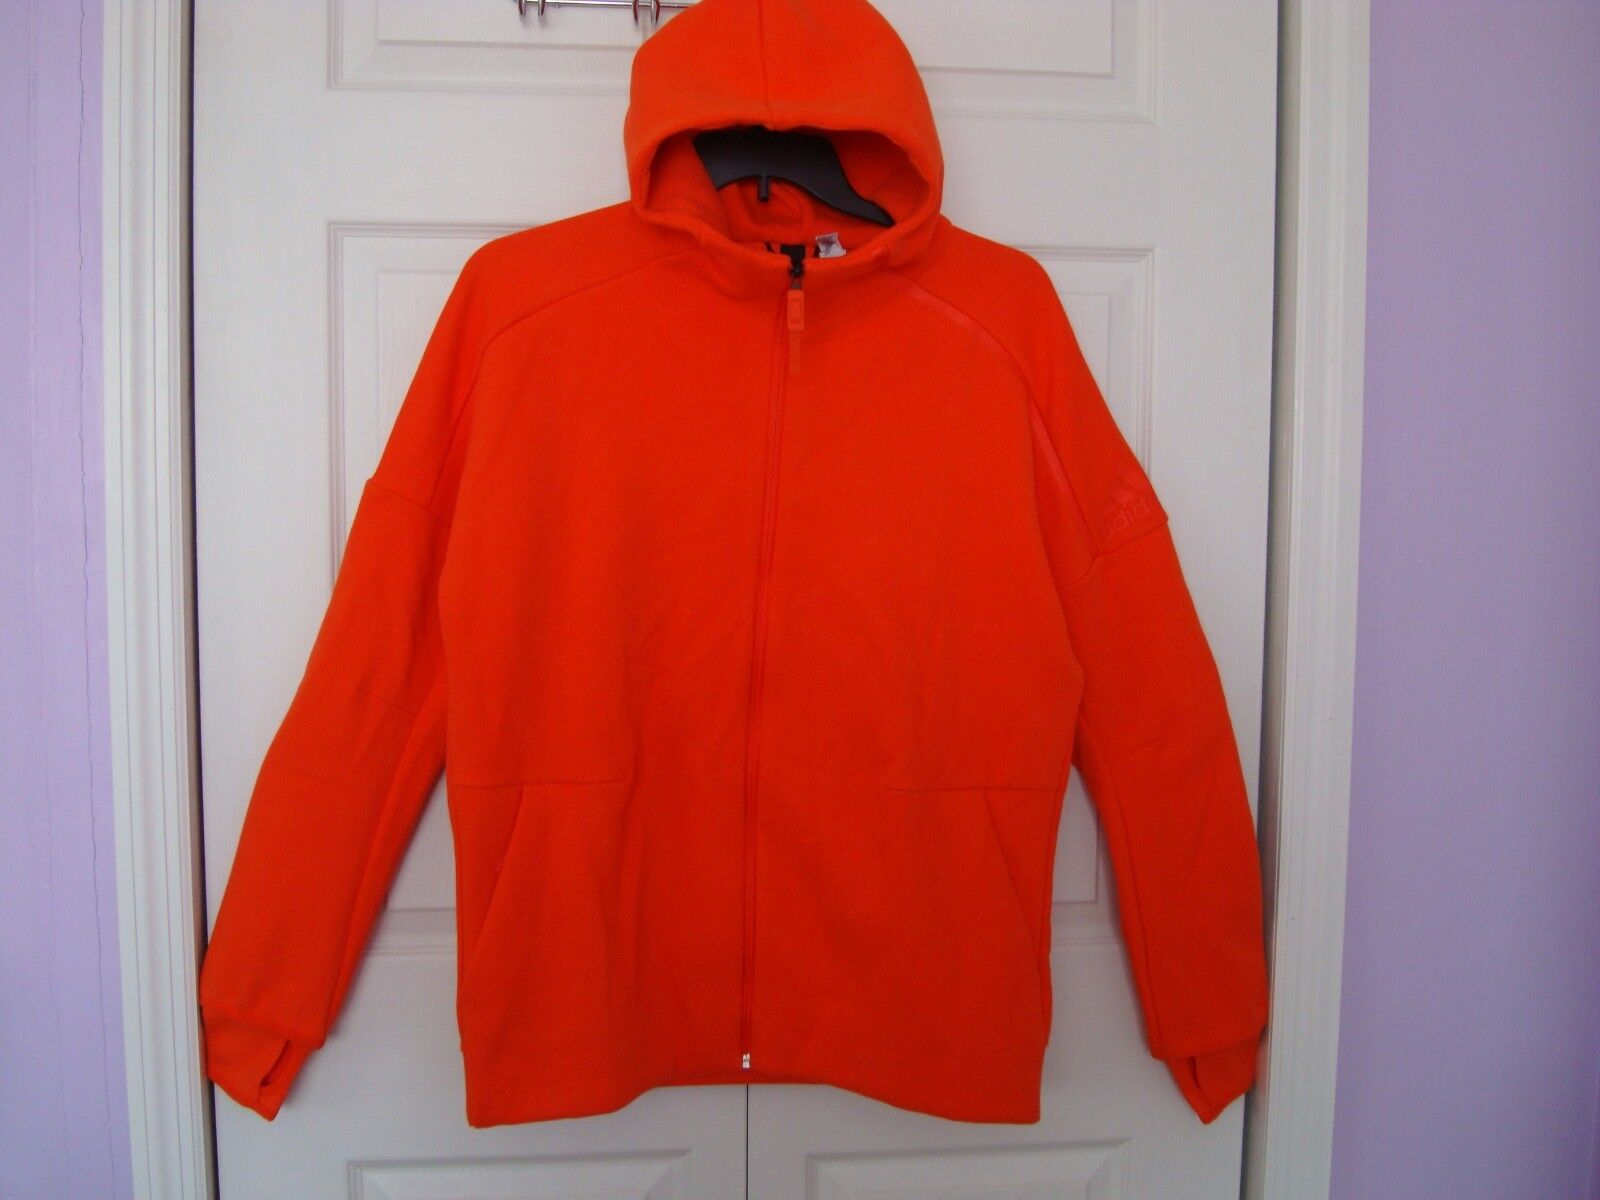 NWT Adidas Donna Athletic ZNE Hoodie Jacket B46938 Orange Size XL  100